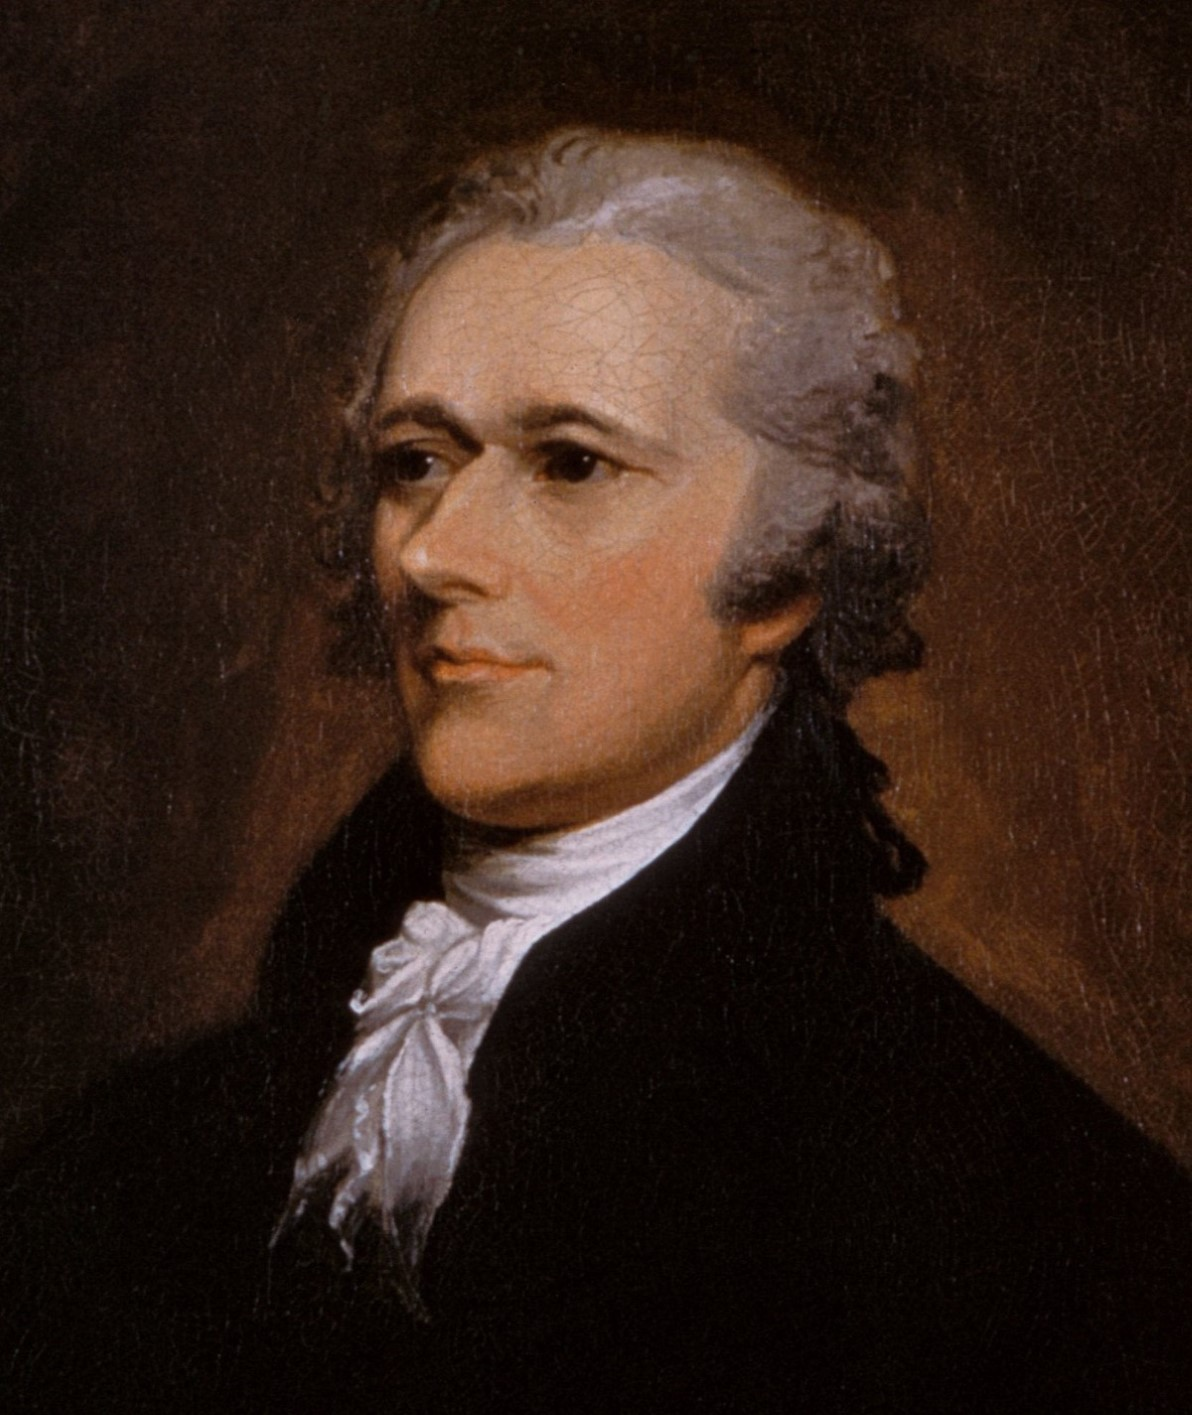 The Popularity of Alexander Hamilton